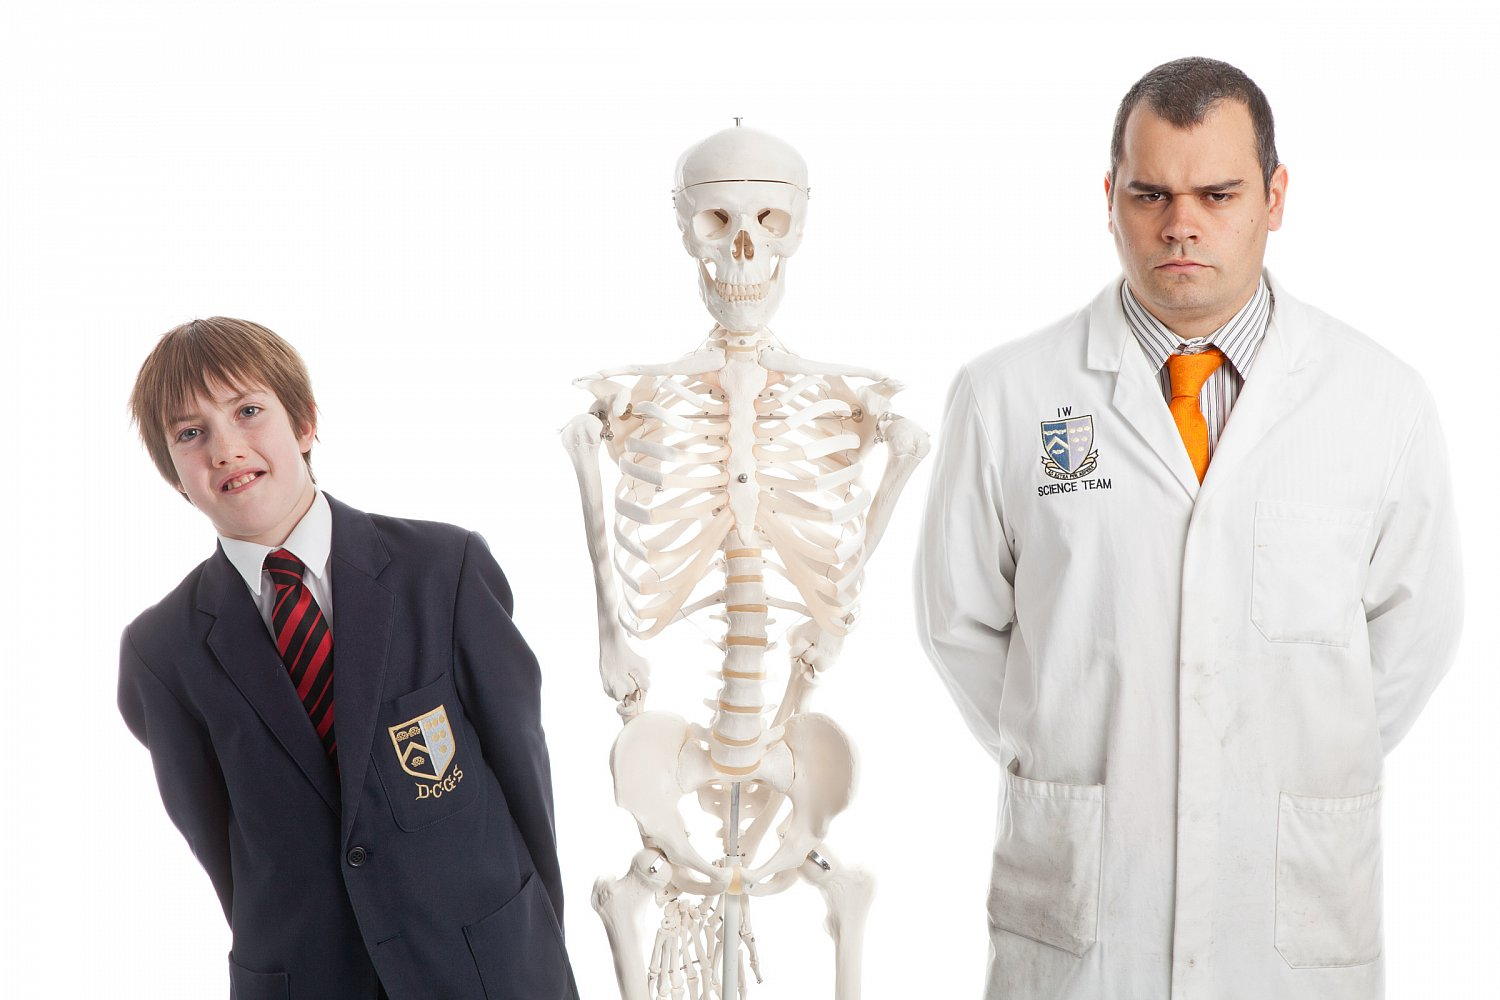 school-photography-prospectus-student-teacher-skeleton-mat-smith.jpg